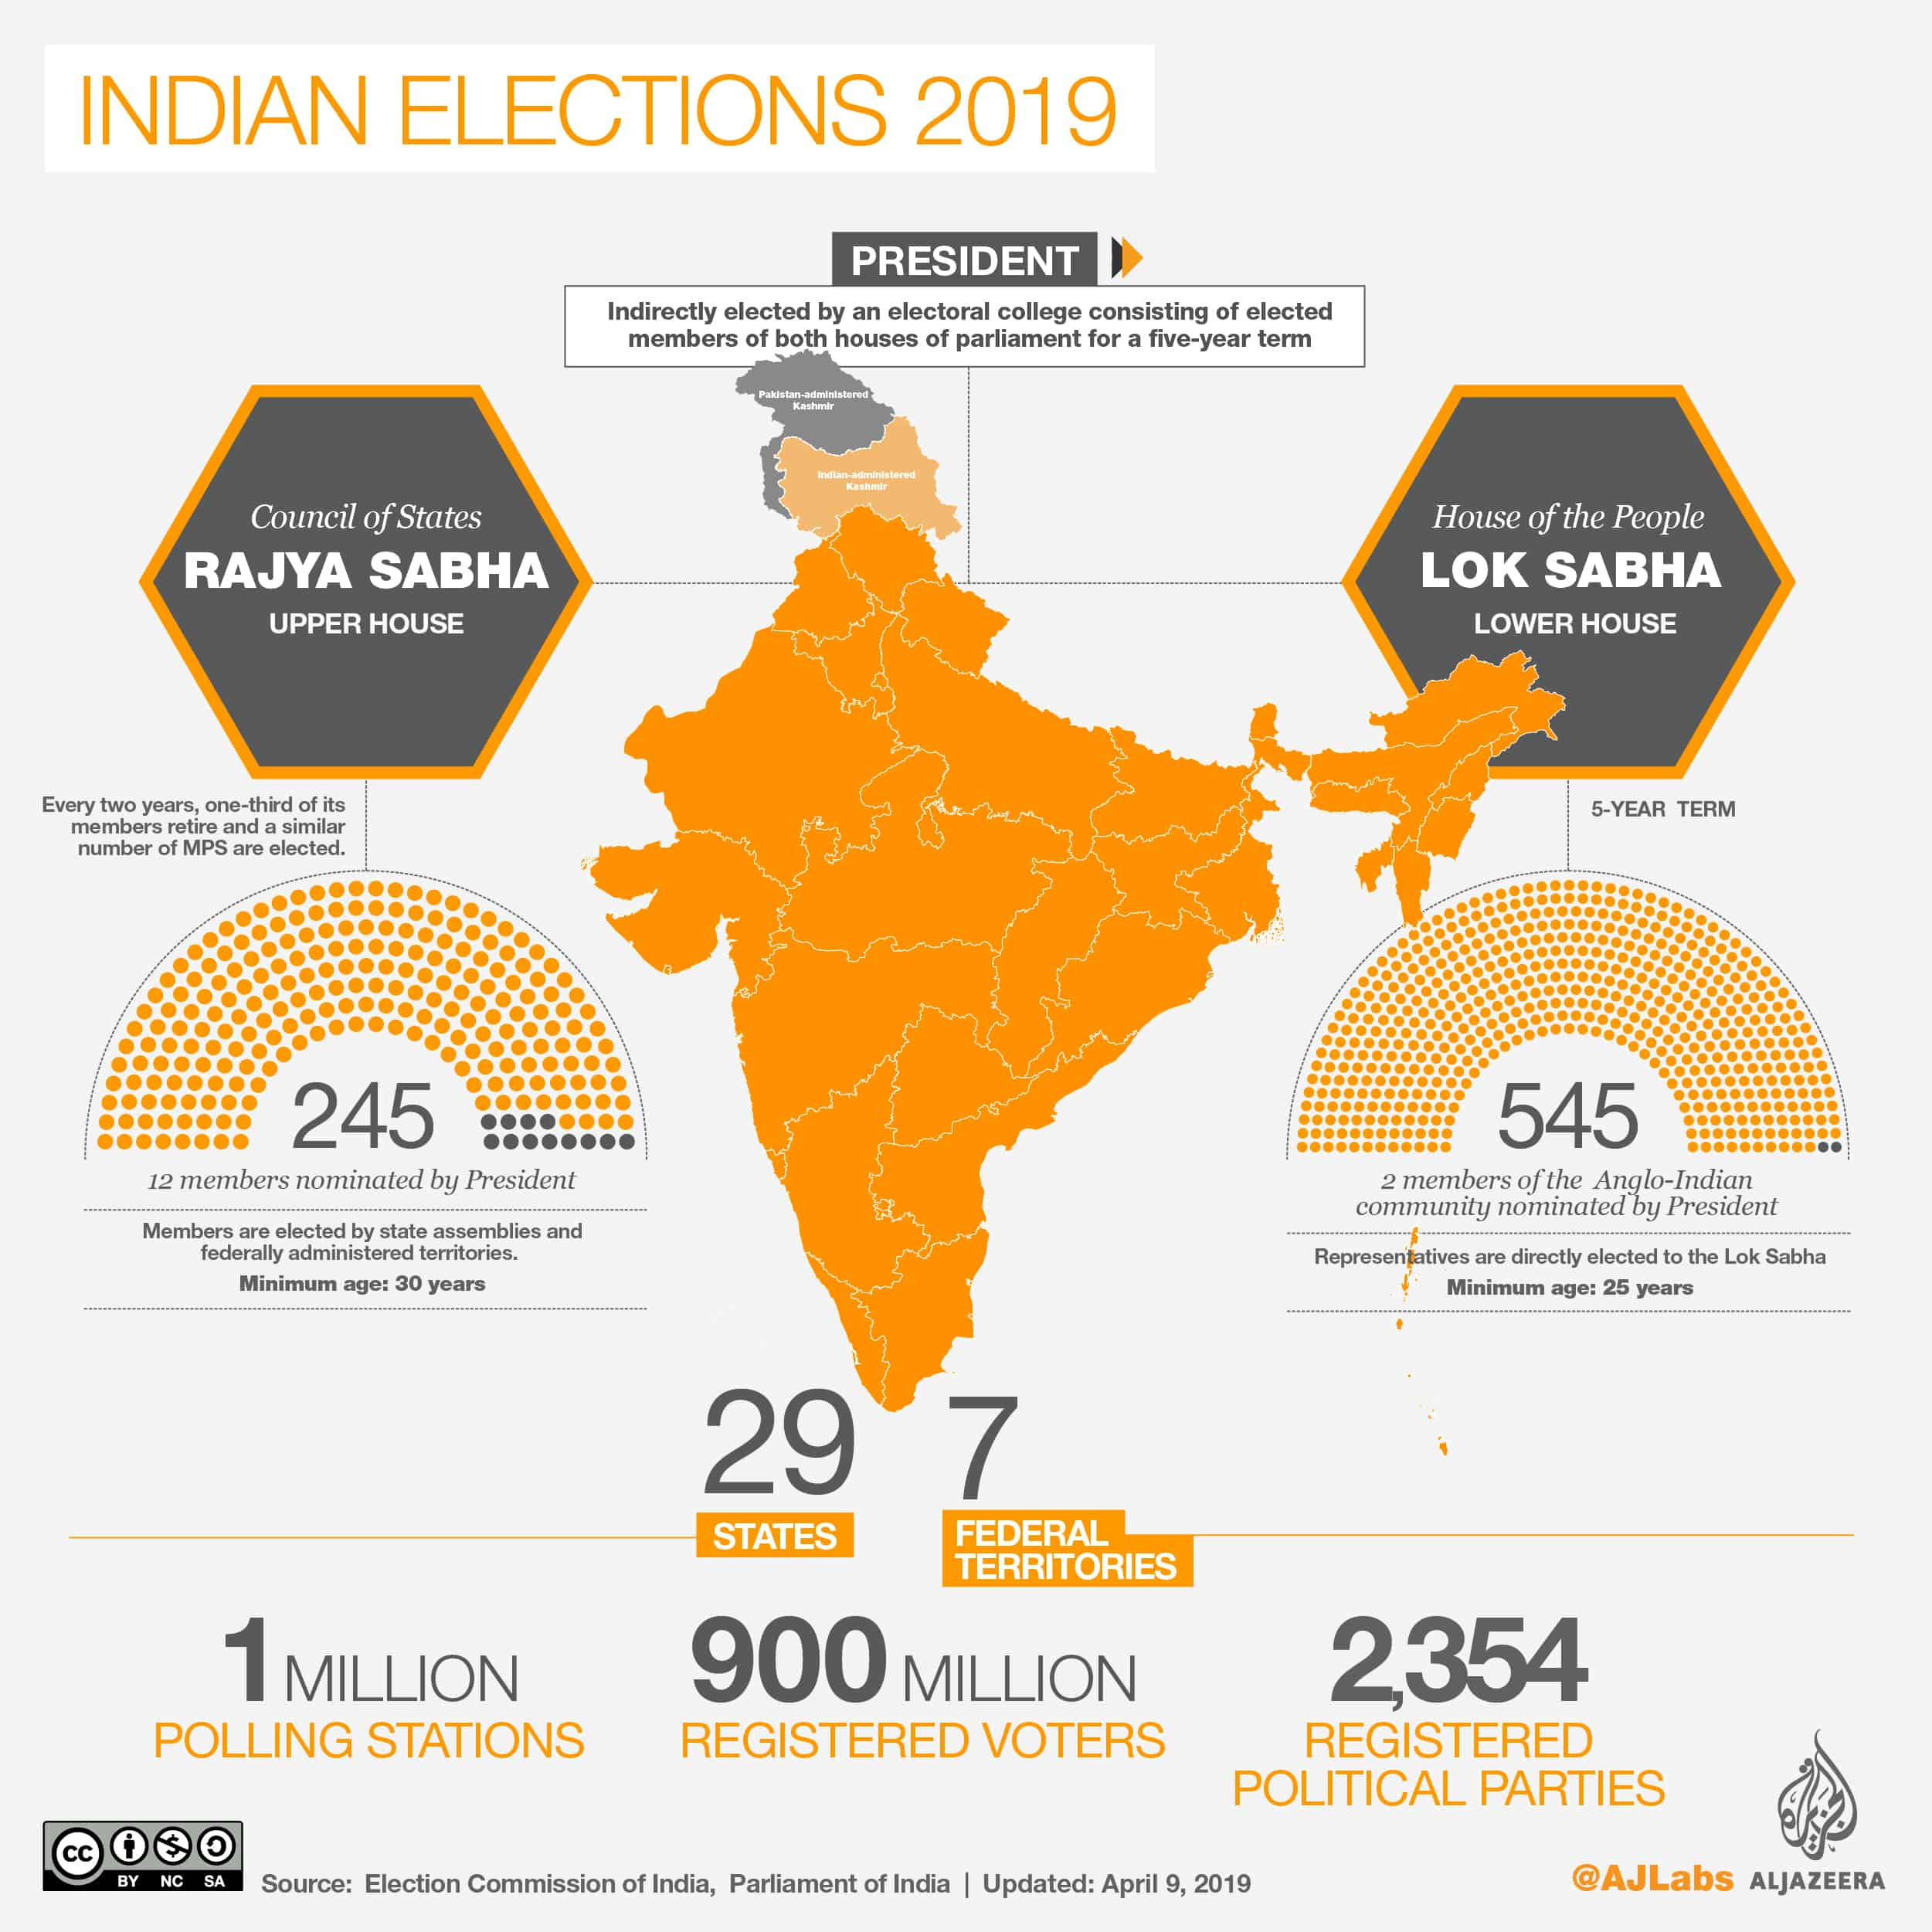 Indian Elections 2019 - Facts and Figures - House of the People Lok Sabha Lower House Elections